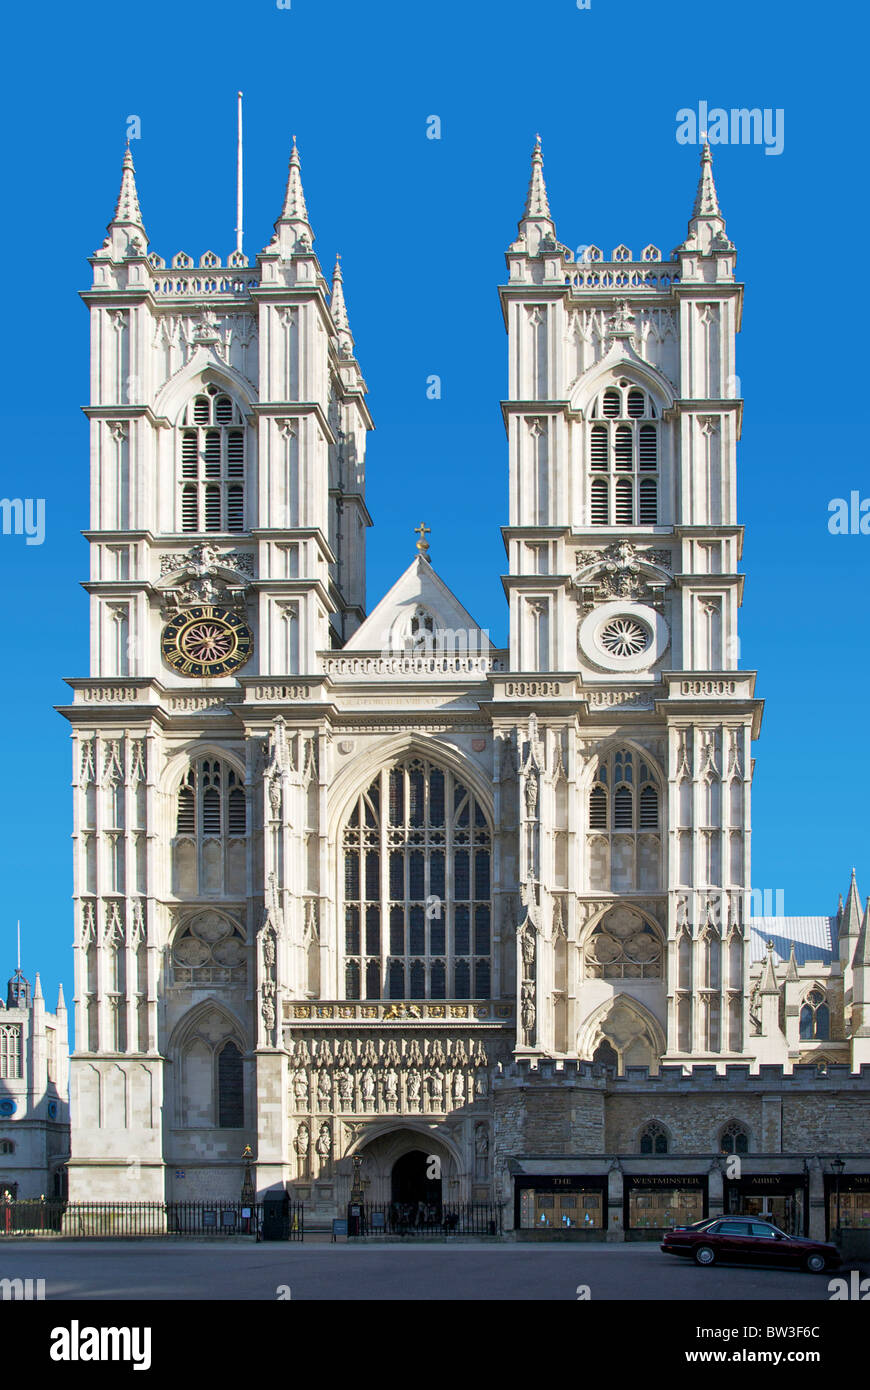 Westminster Abbey - Stock Image